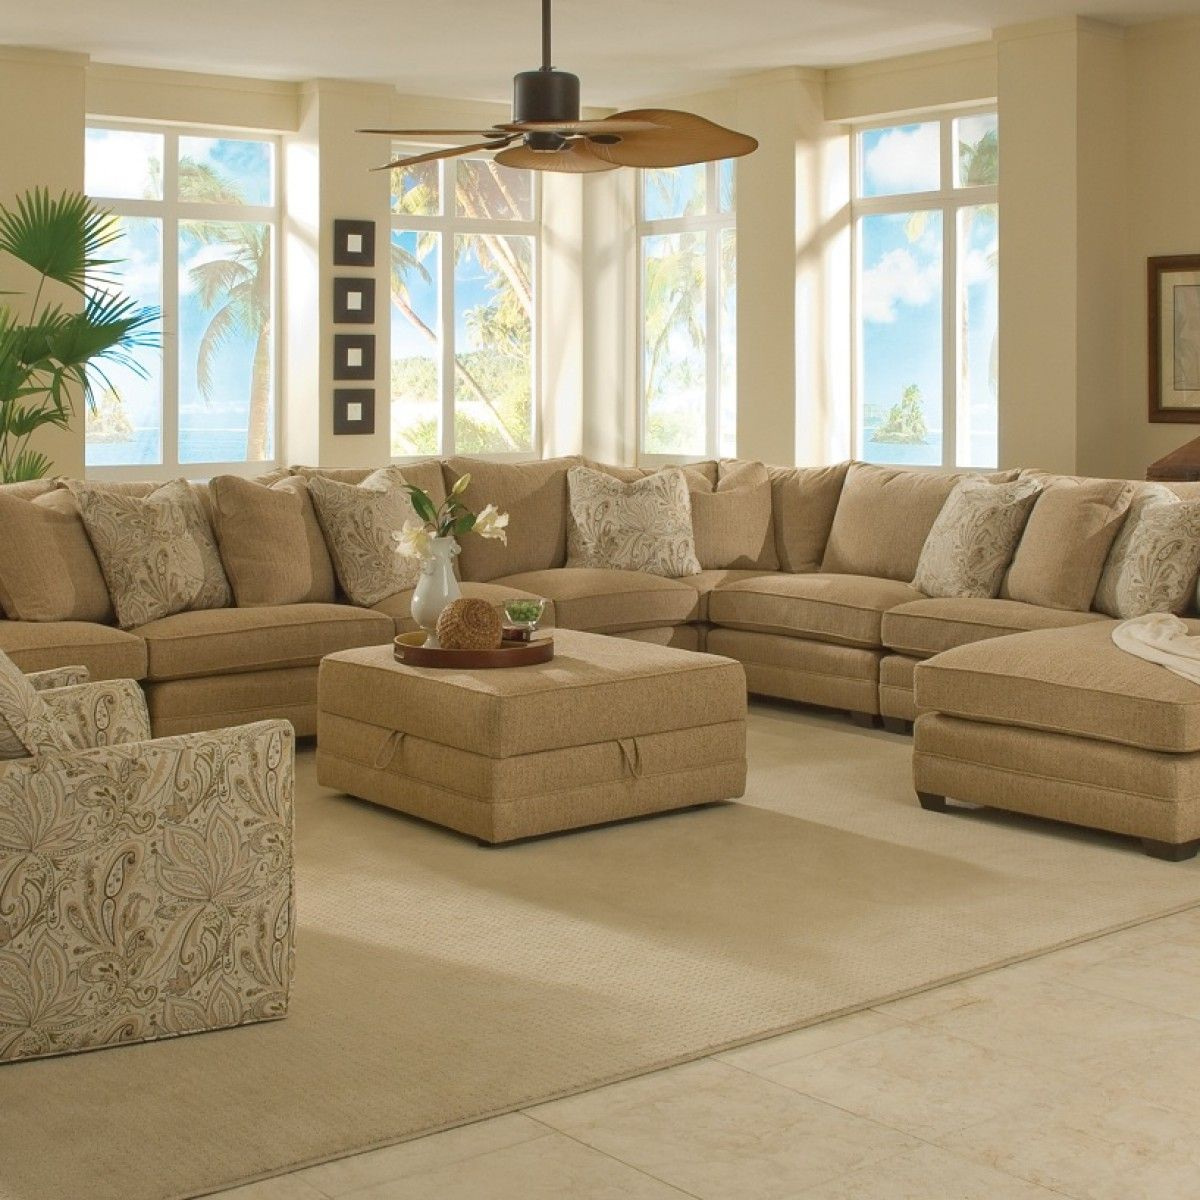 Magnificent large sectional sofas family room for Living room designs for big spaces